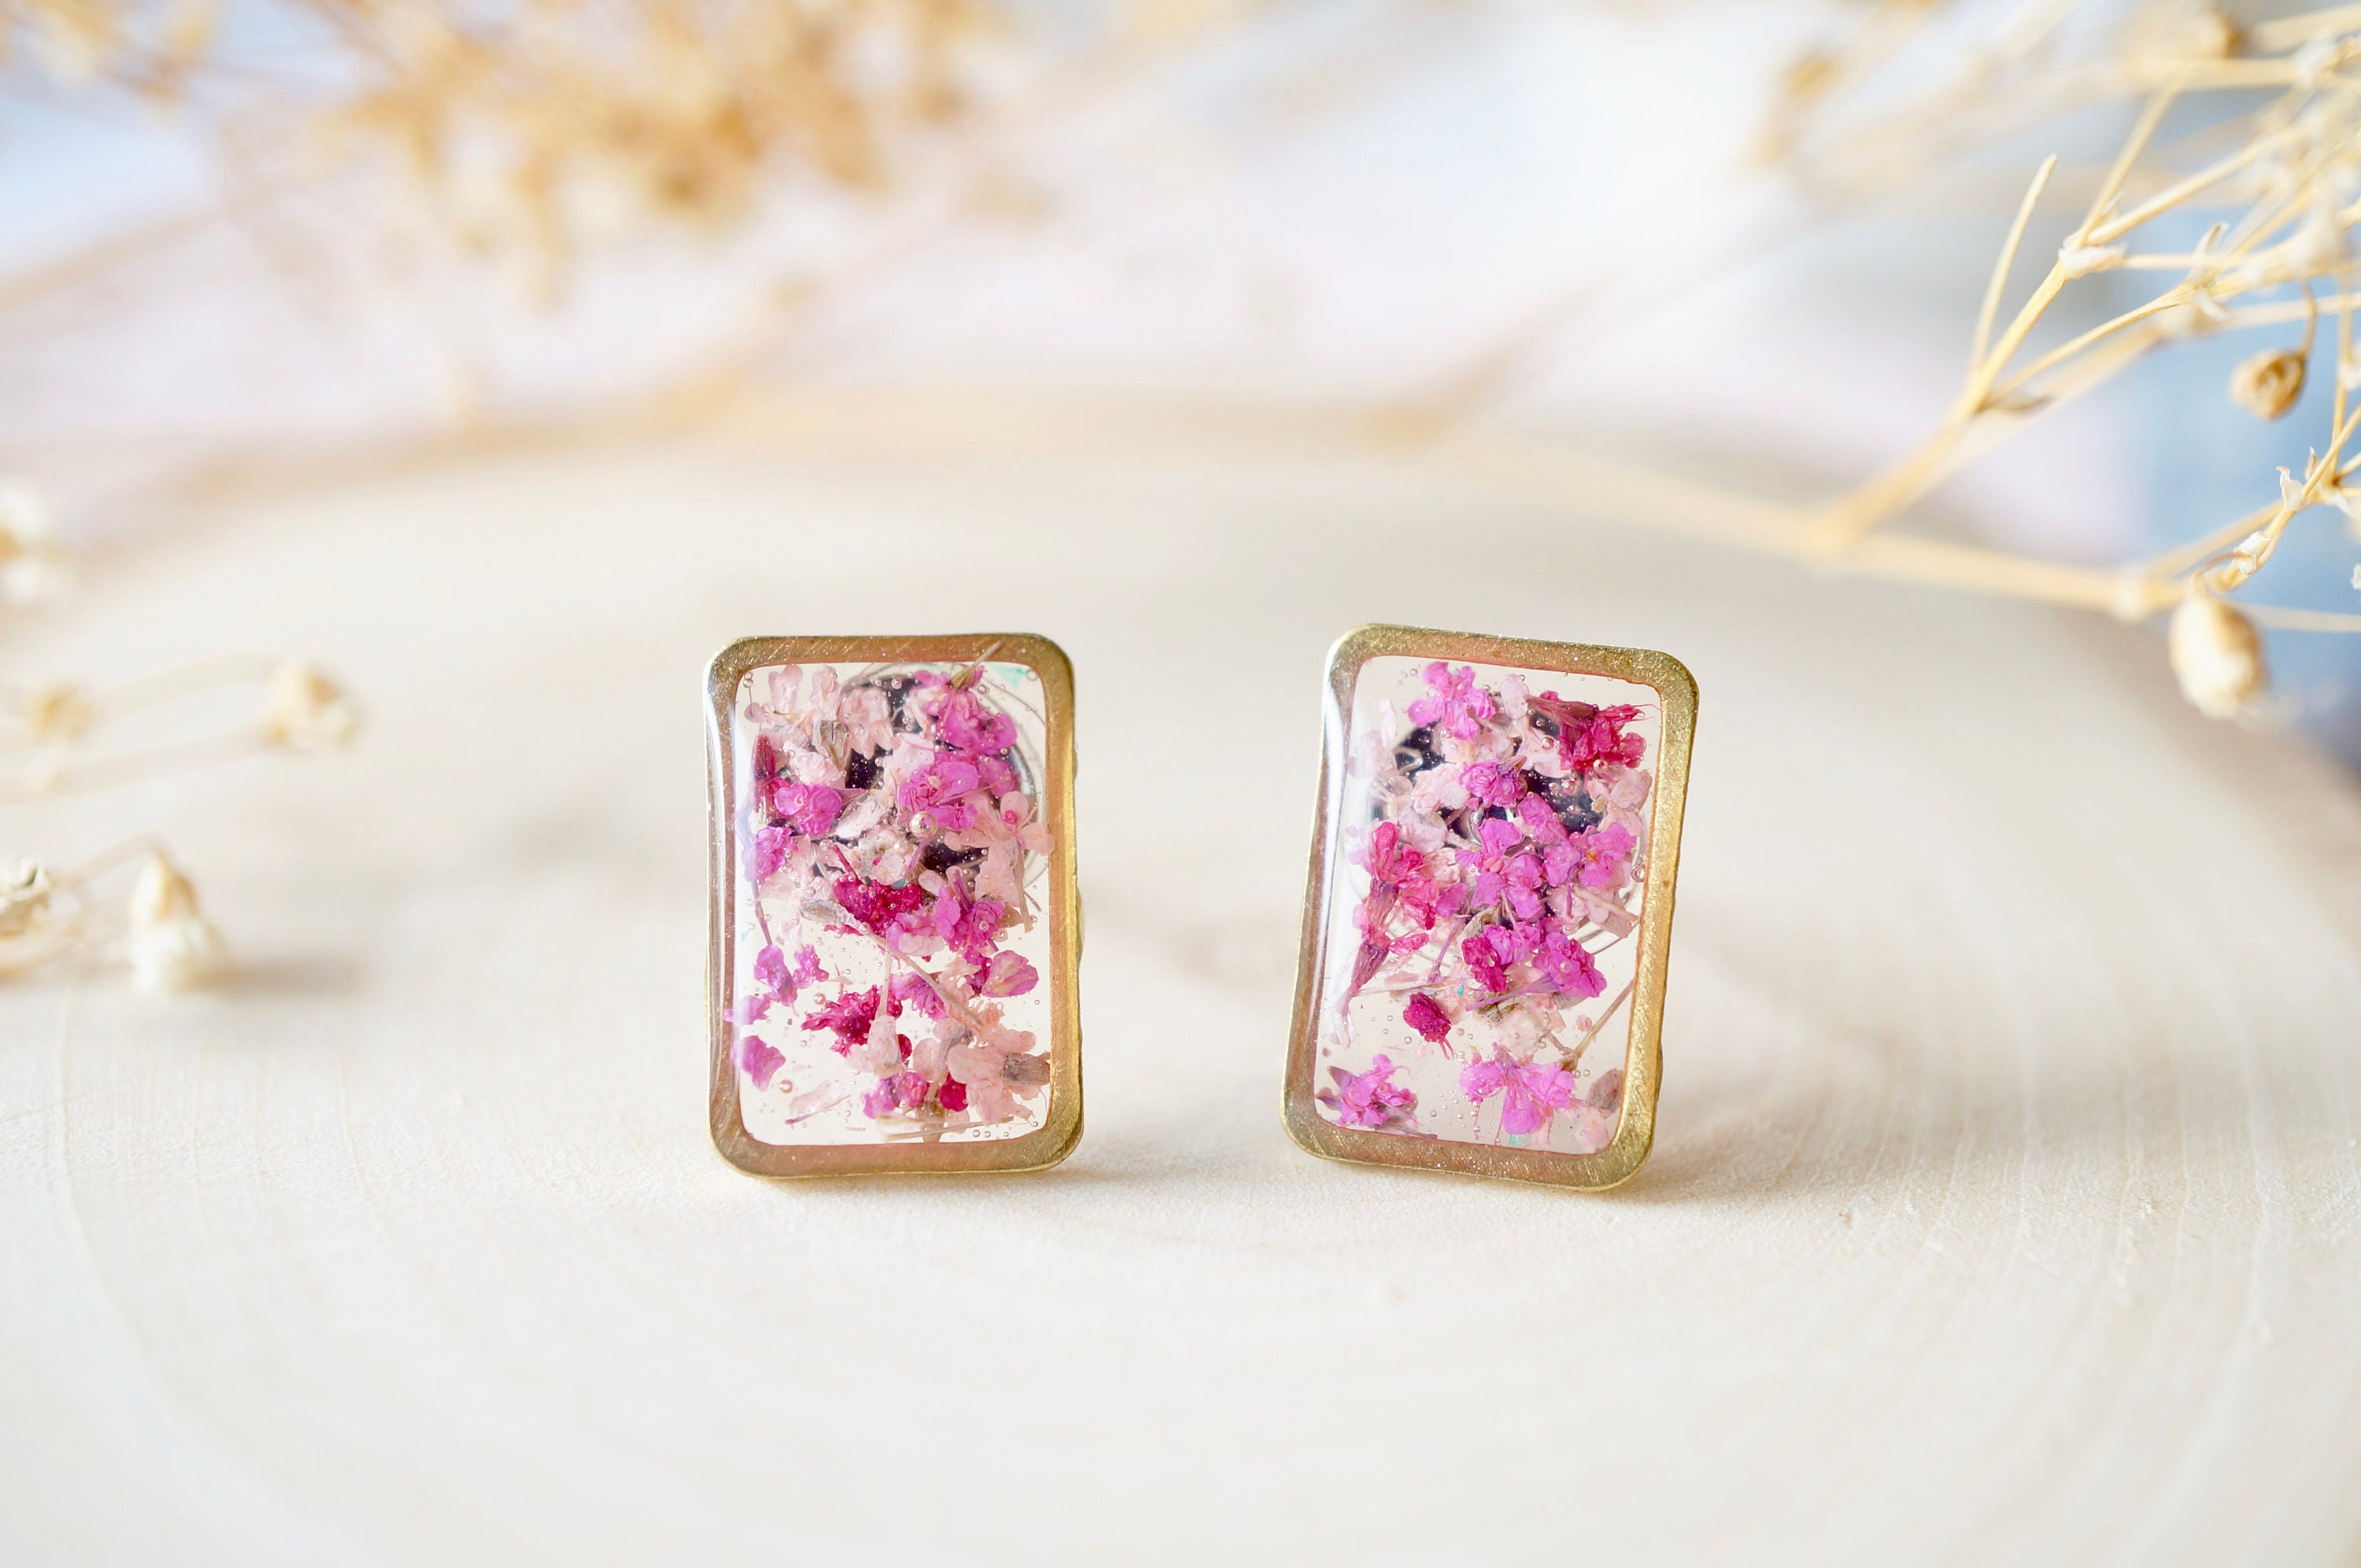 Real Pressed Flowers and Resin Stud Earrings Gold Rectangle